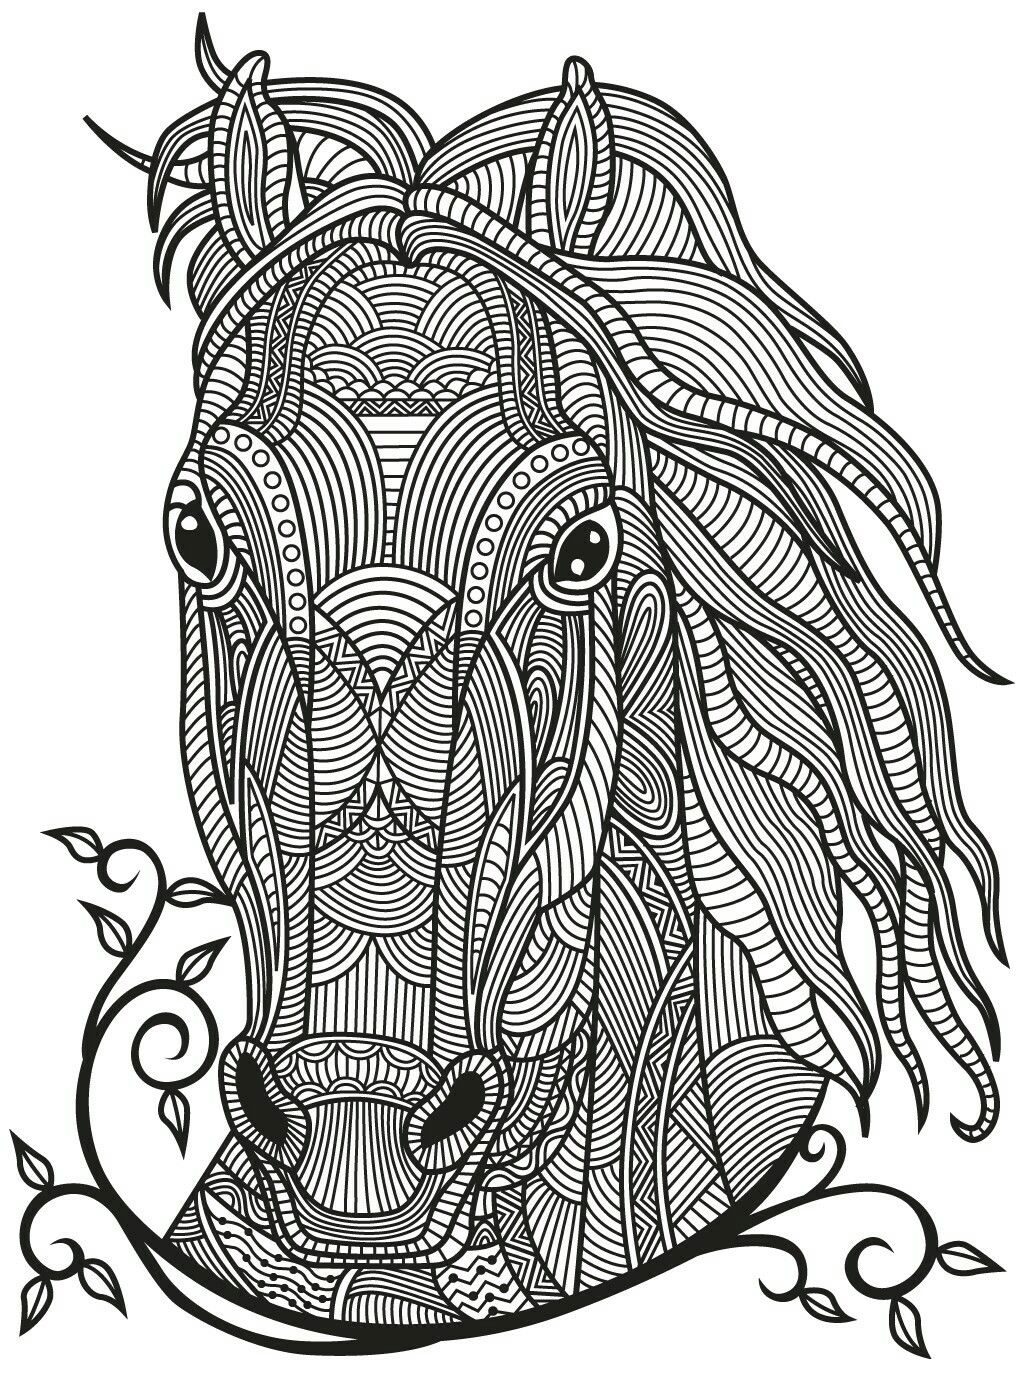 Horse Zentangle | Colorish: coloring book app for adults mandala ...